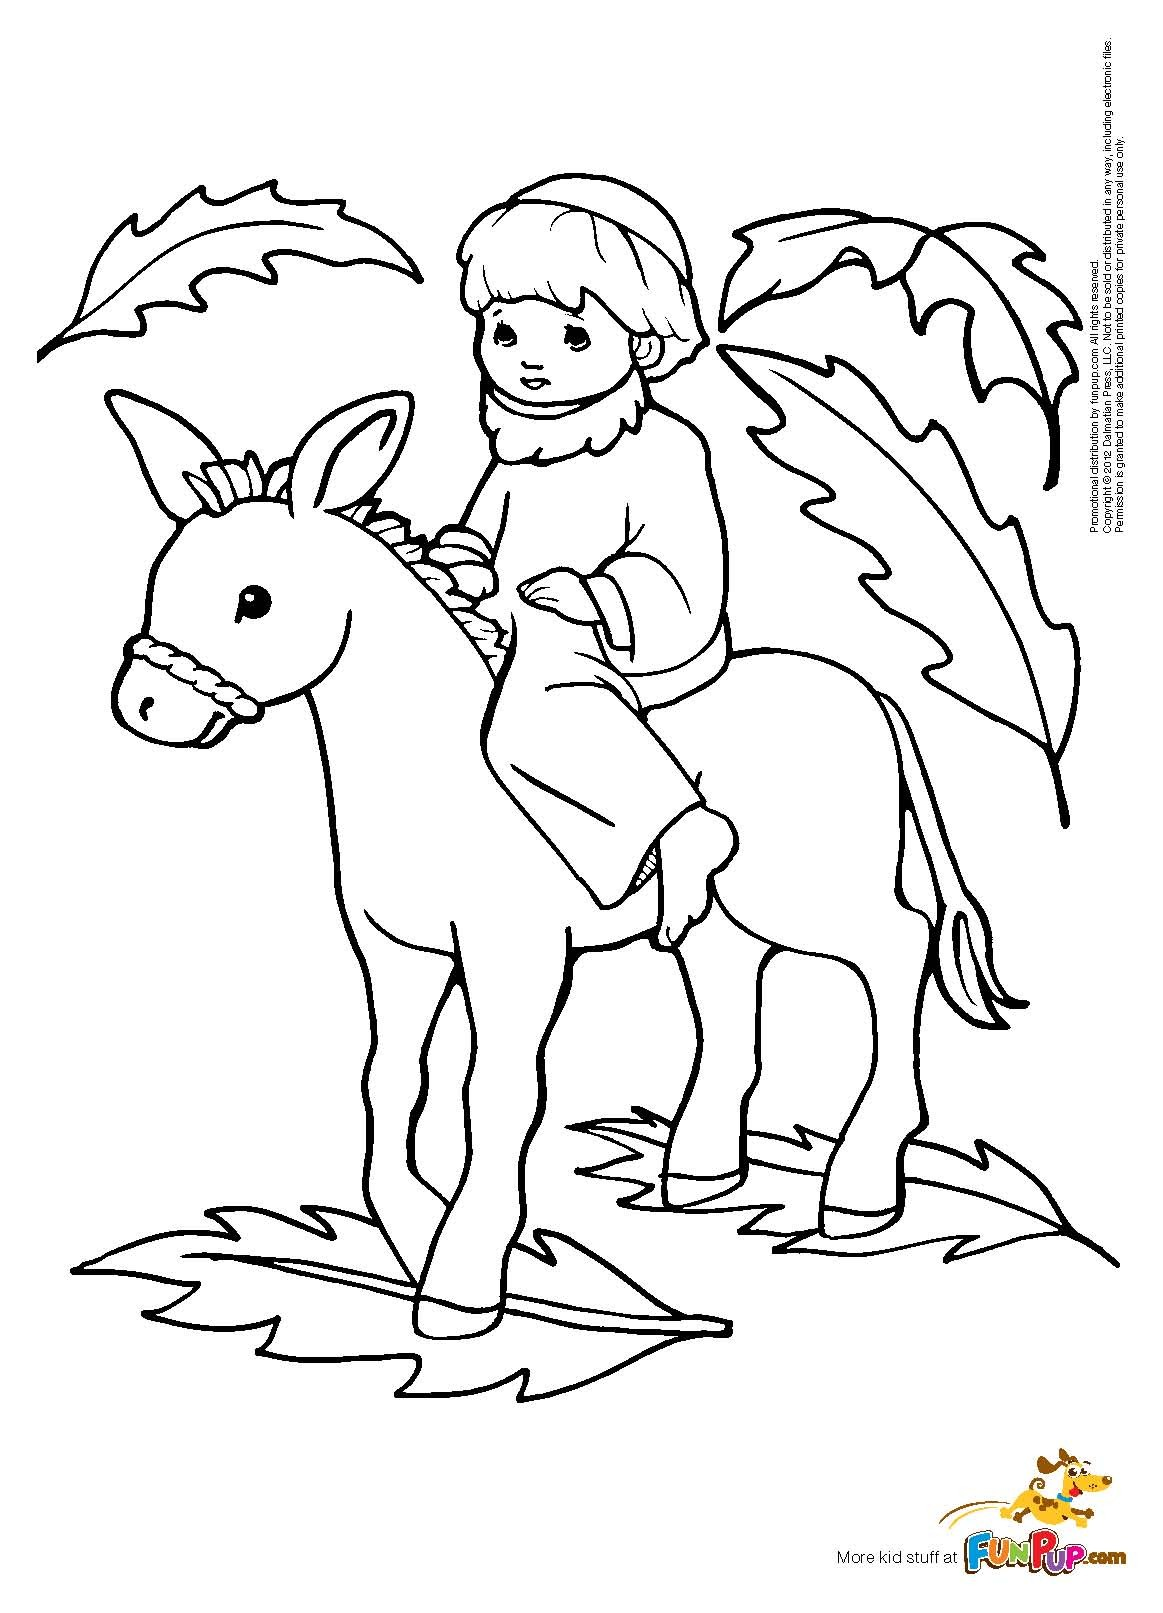 1163x1613 Palm Sunday Coloring Page